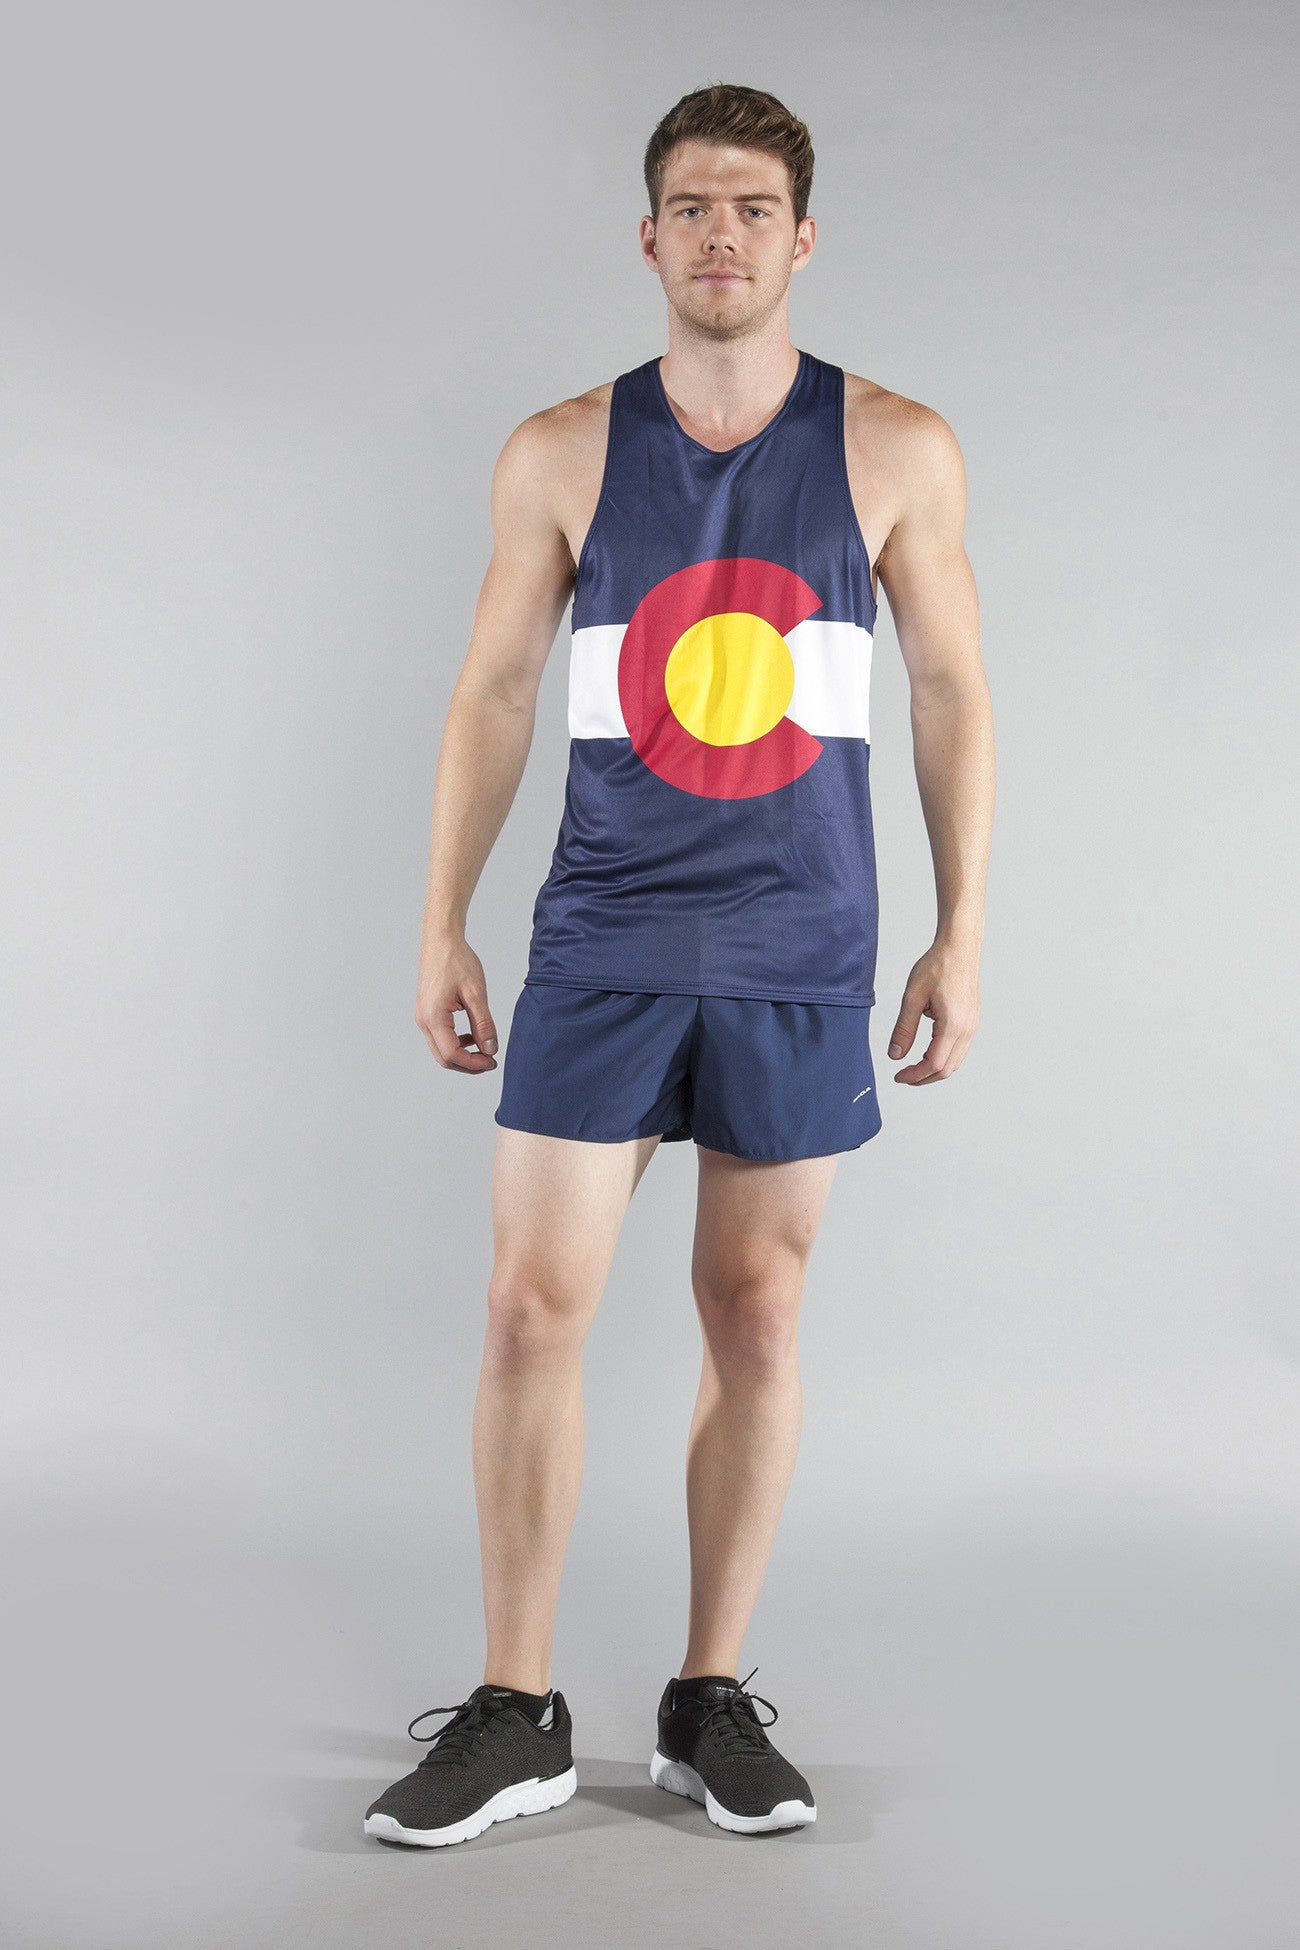 Men's State Flags - Singlets – BOA | Running Shorts & Clothing